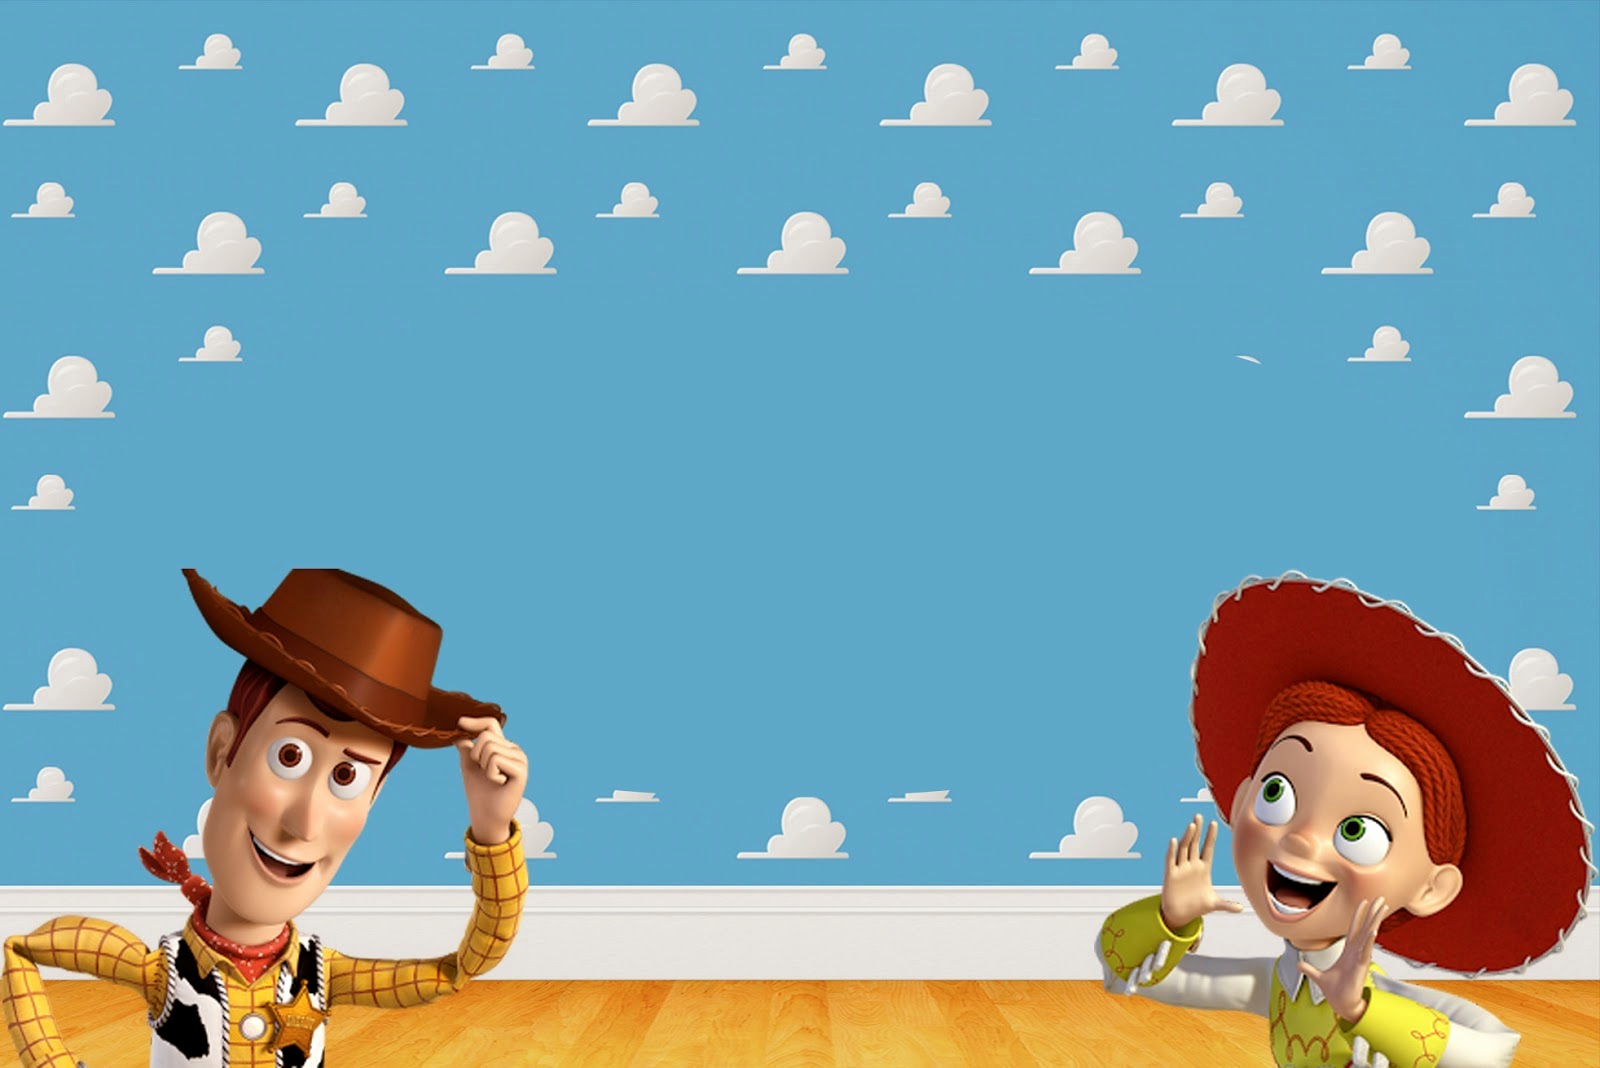 Toy Story Invitation Template Download Awesome toy Story 3 Free Printable Invitations Oh My Fiesta